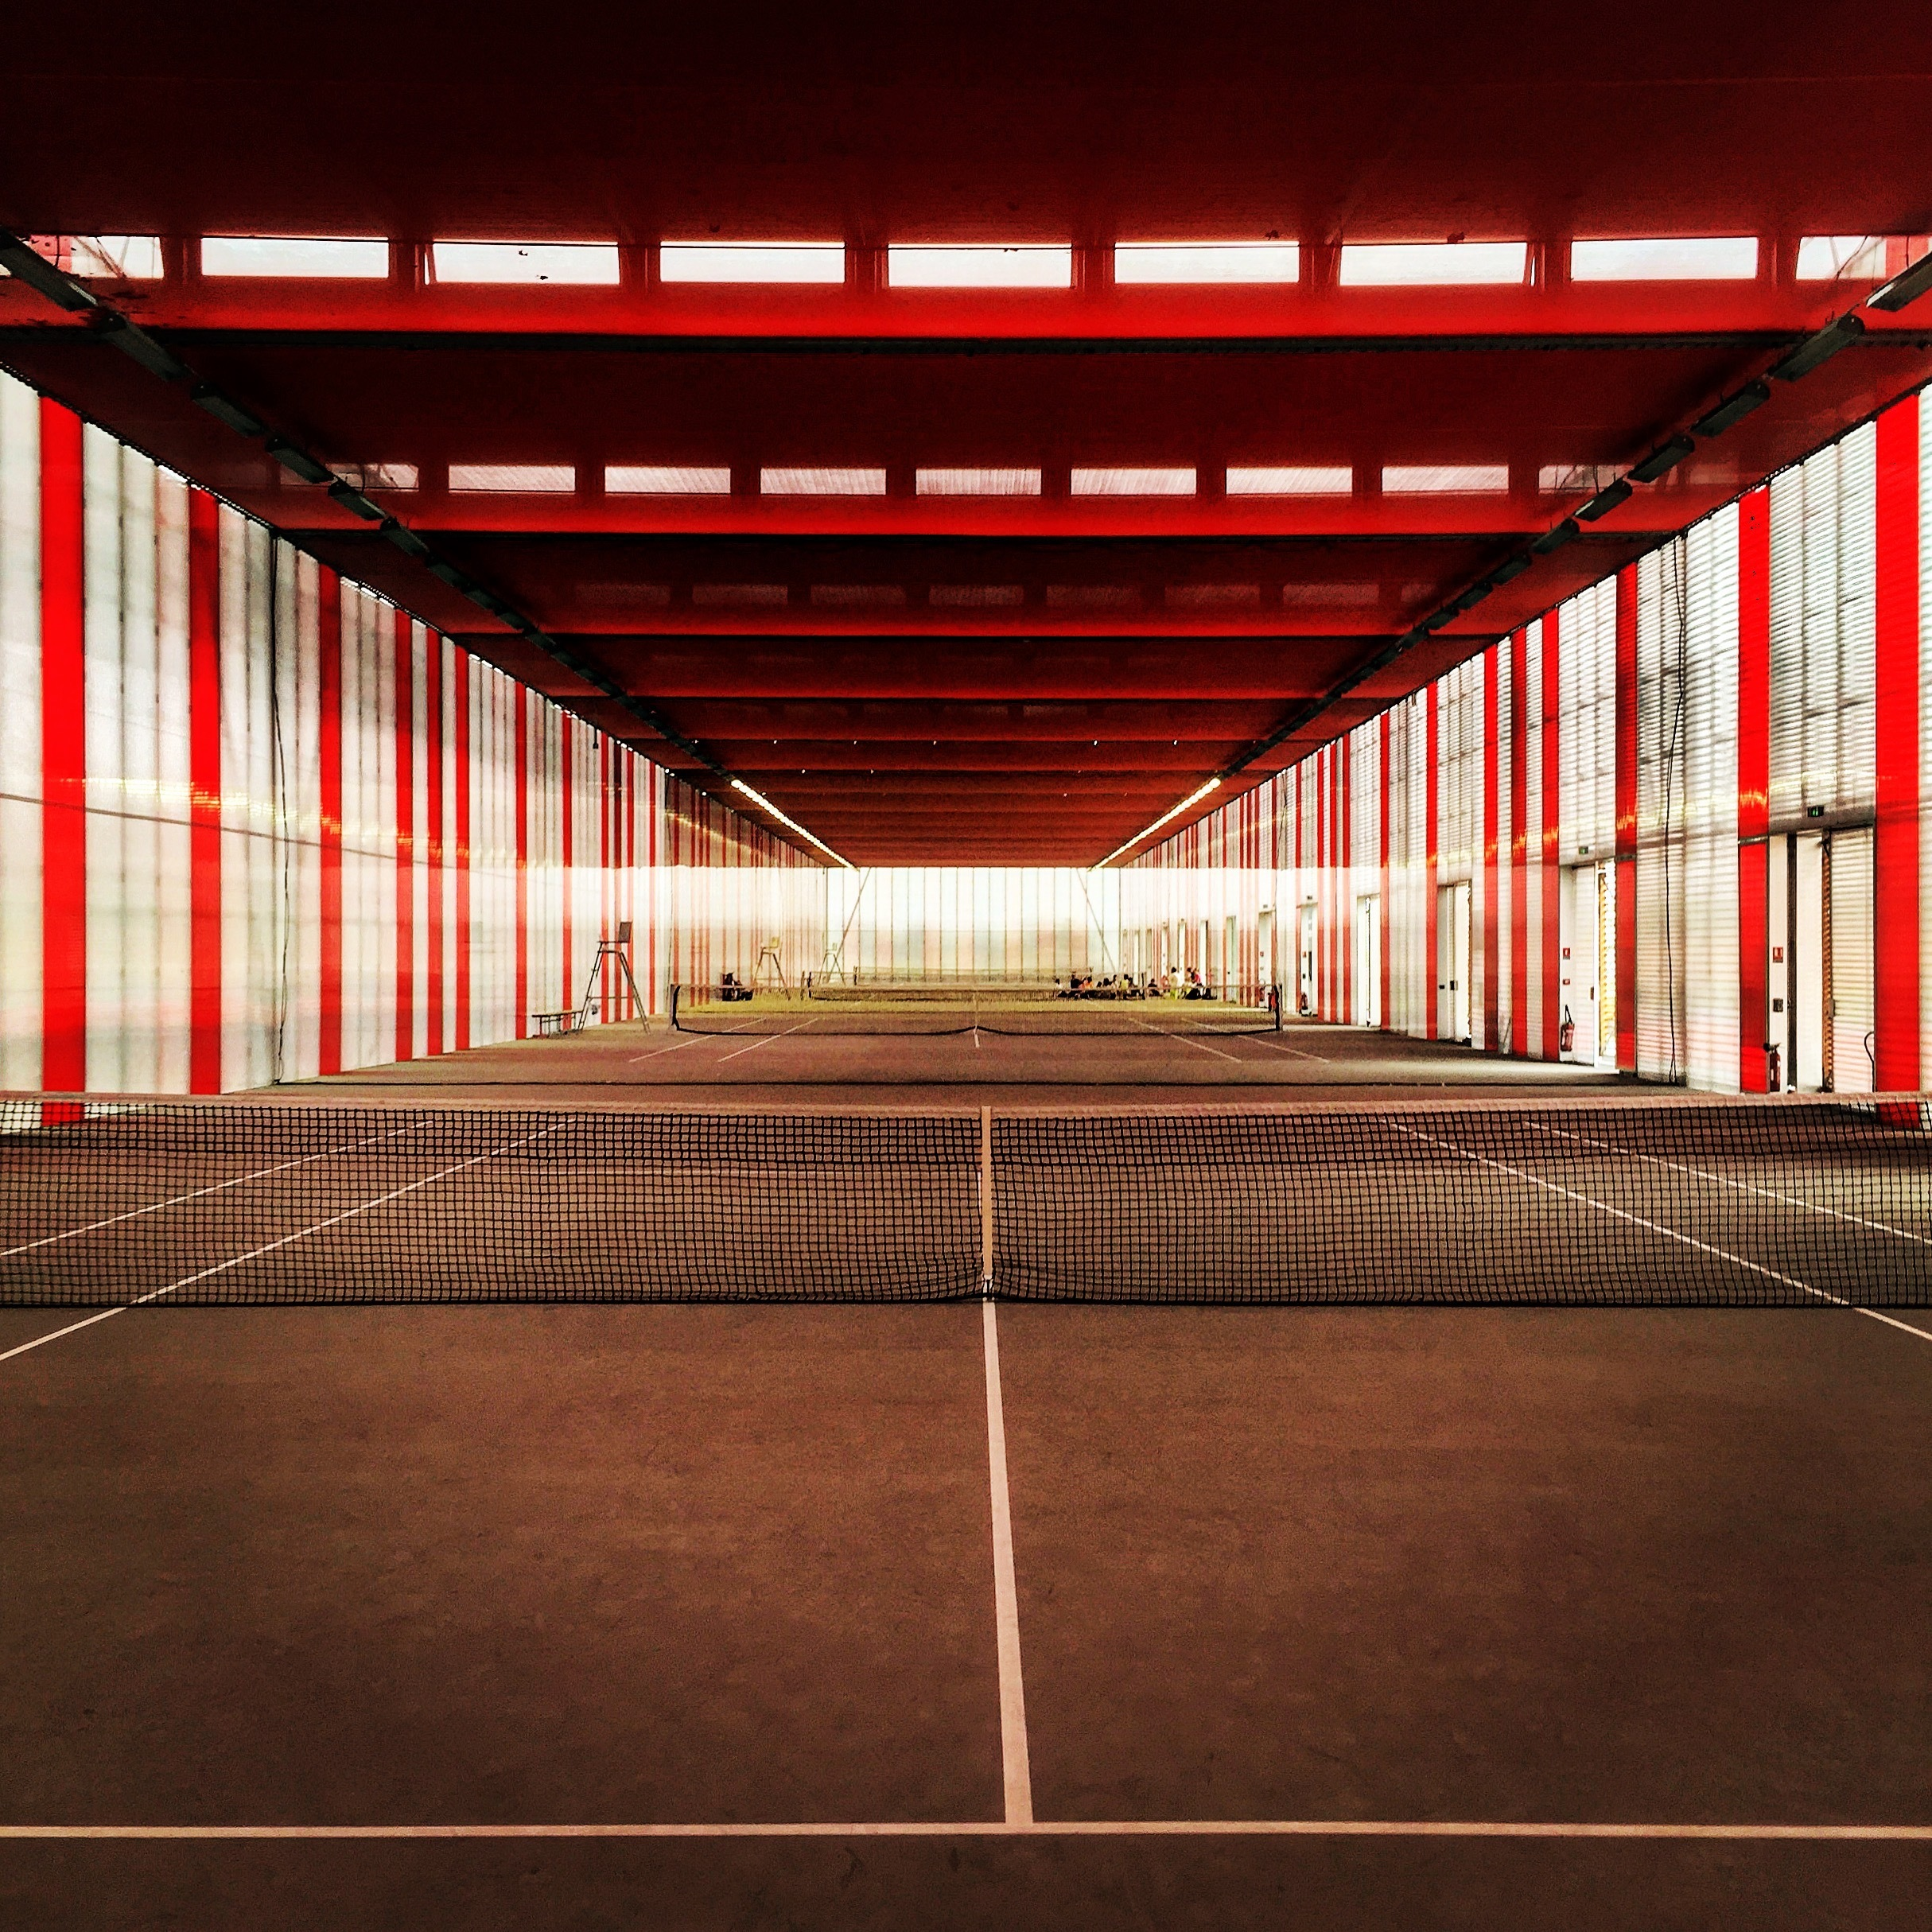 Terrain tennis Paris